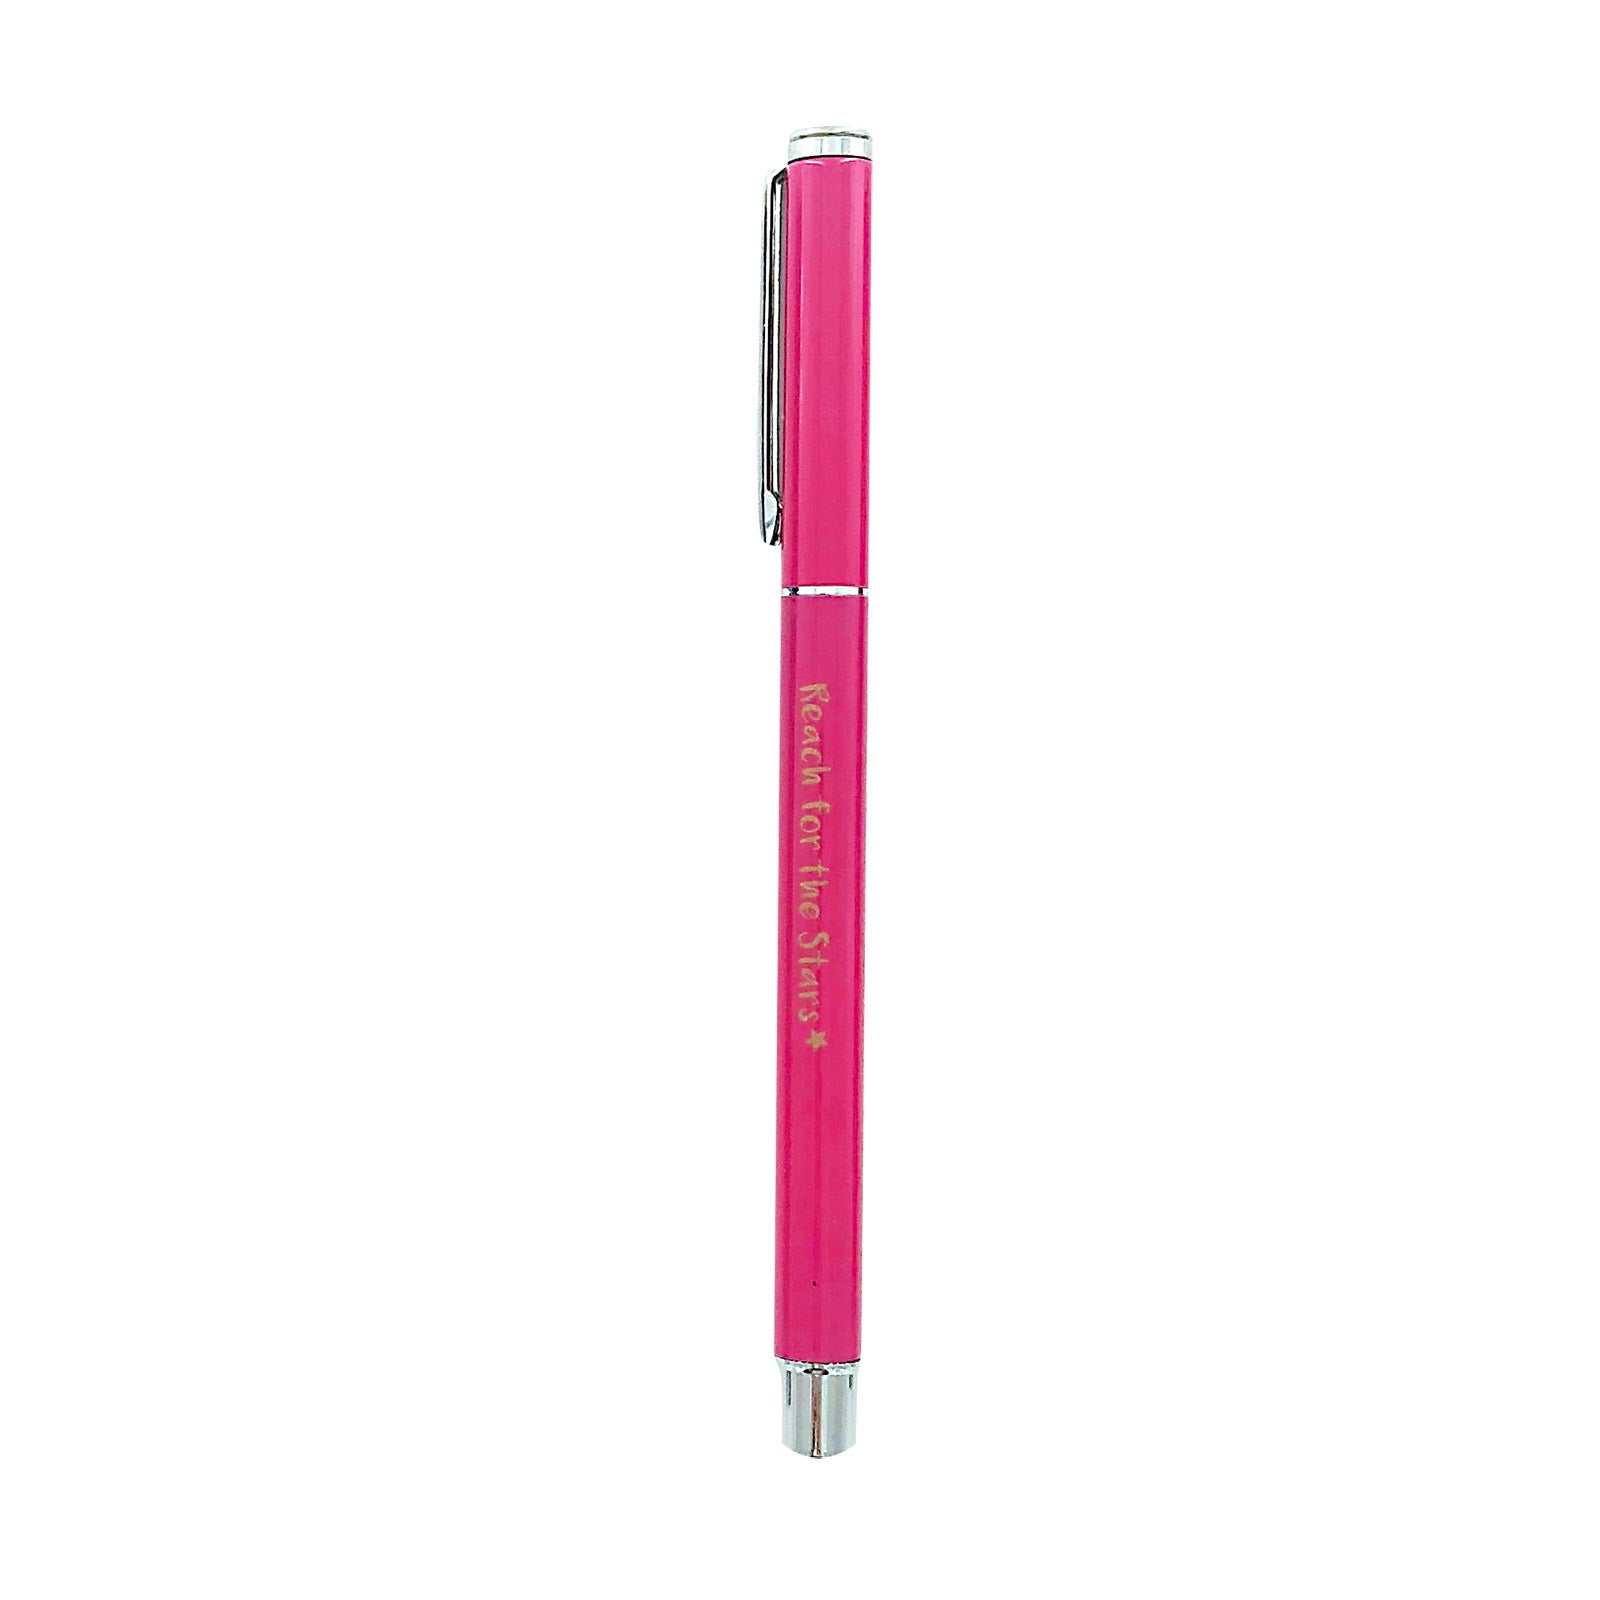 Metal Pen - Reach For The Stars - Hot Pink